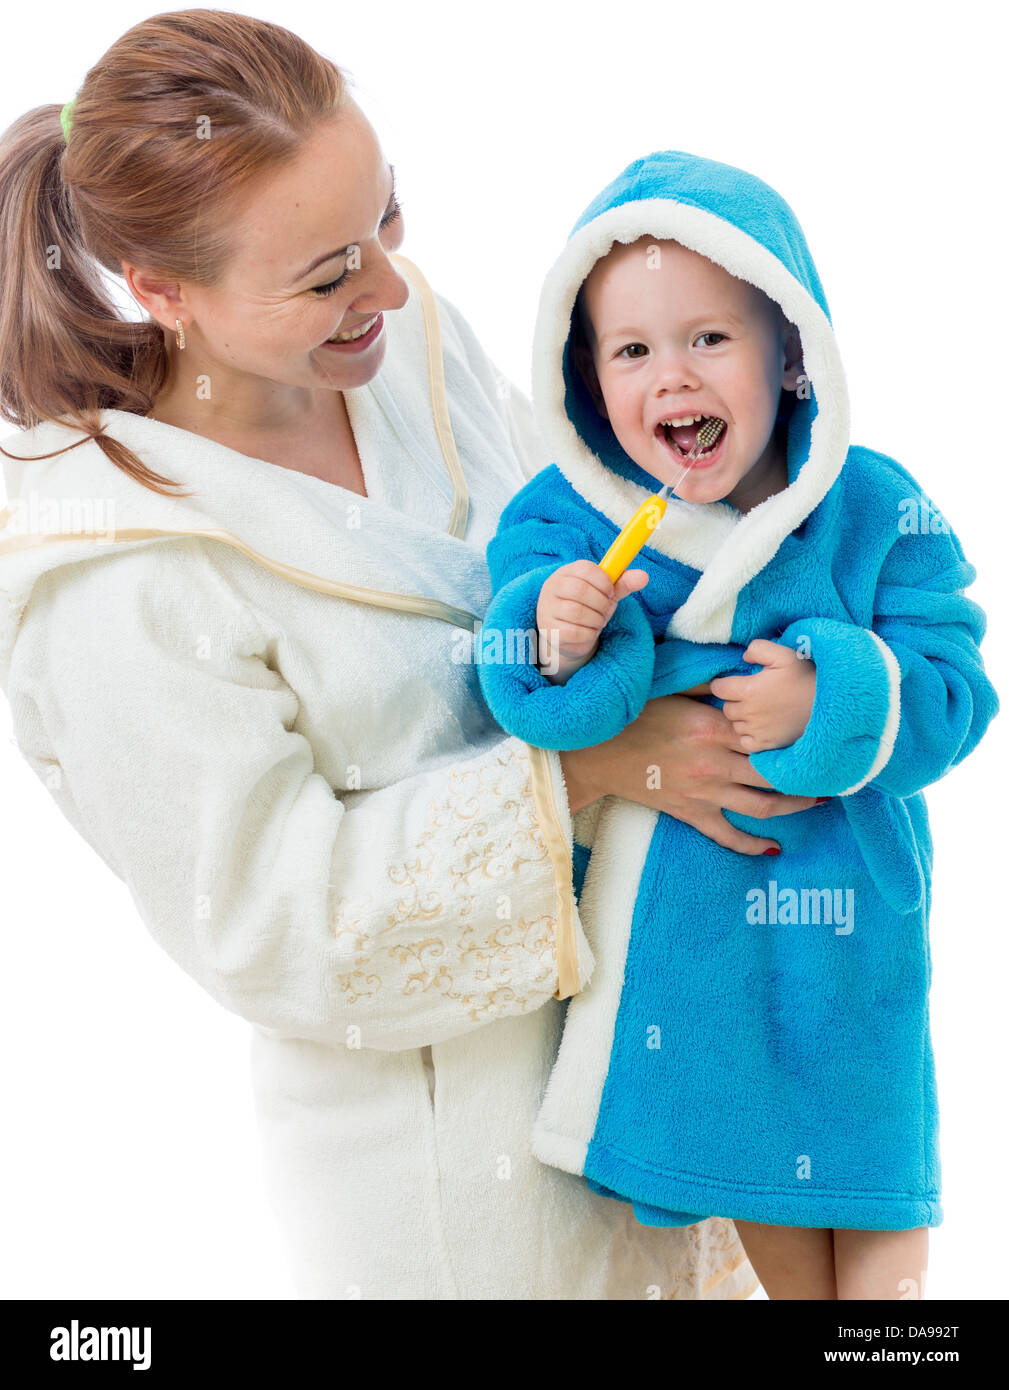 Happy mother and child teeth brushing together in bathroom Stock Photo